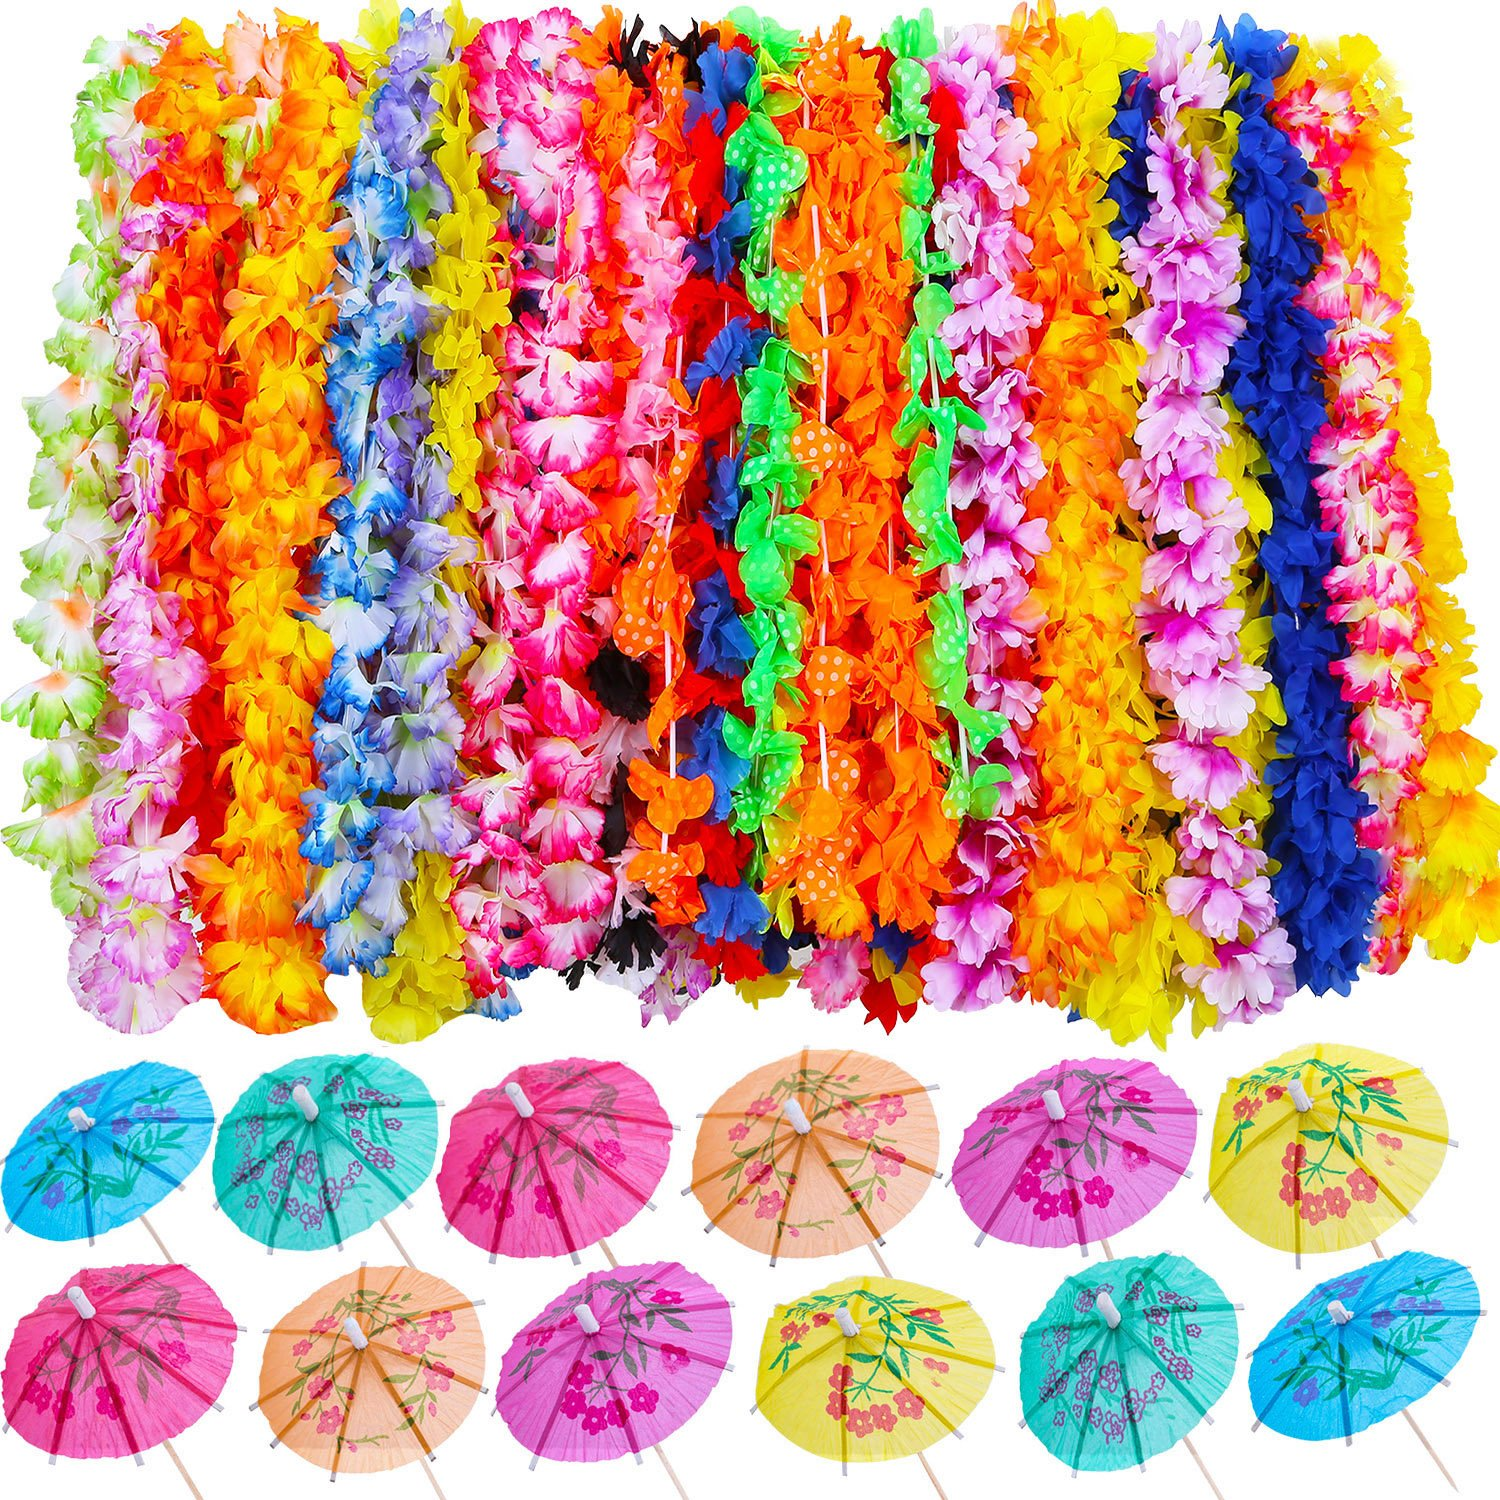 Blulu 100 Pieces Luau Party Supplies Includes 50 Pieces Hawaiian Ruffled Flower Leis and 50 Pieces Mini Paper Umbrellas for Beach Theme Party, Birthday